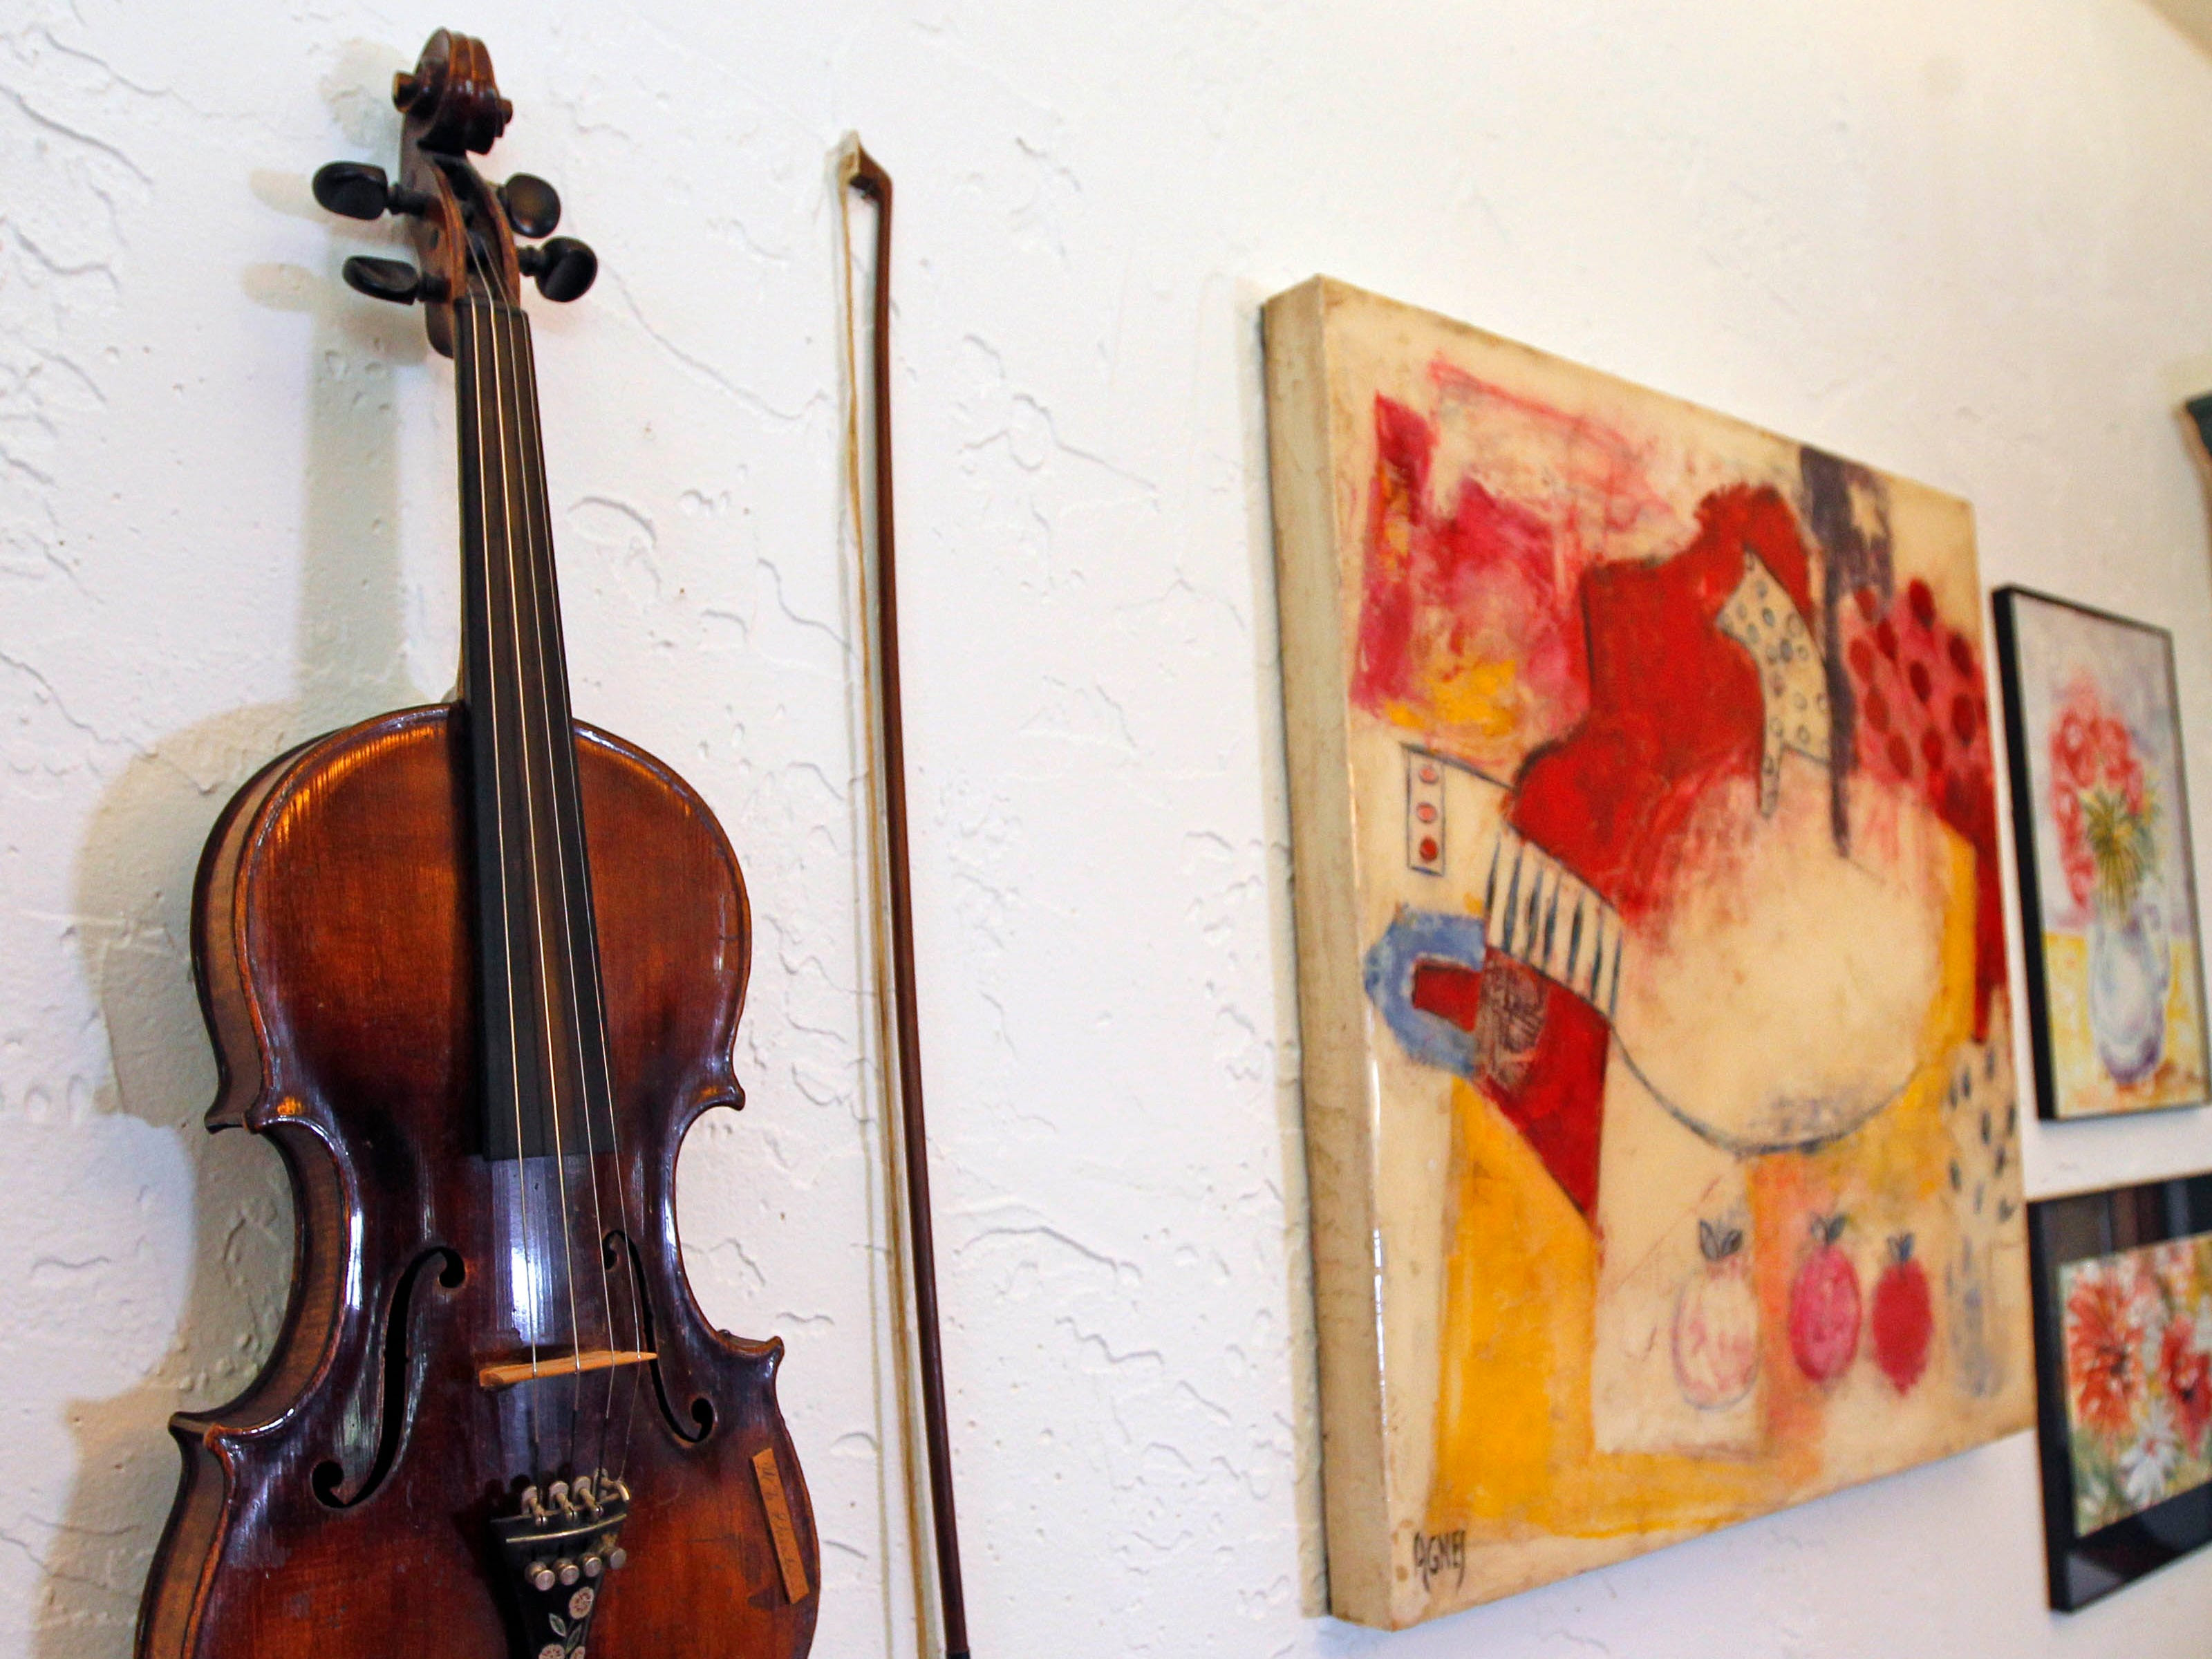 This fiddle belonged to Ann Sheahan's Irish grandfather and dates to about 1919. It's displayed in her dining room.